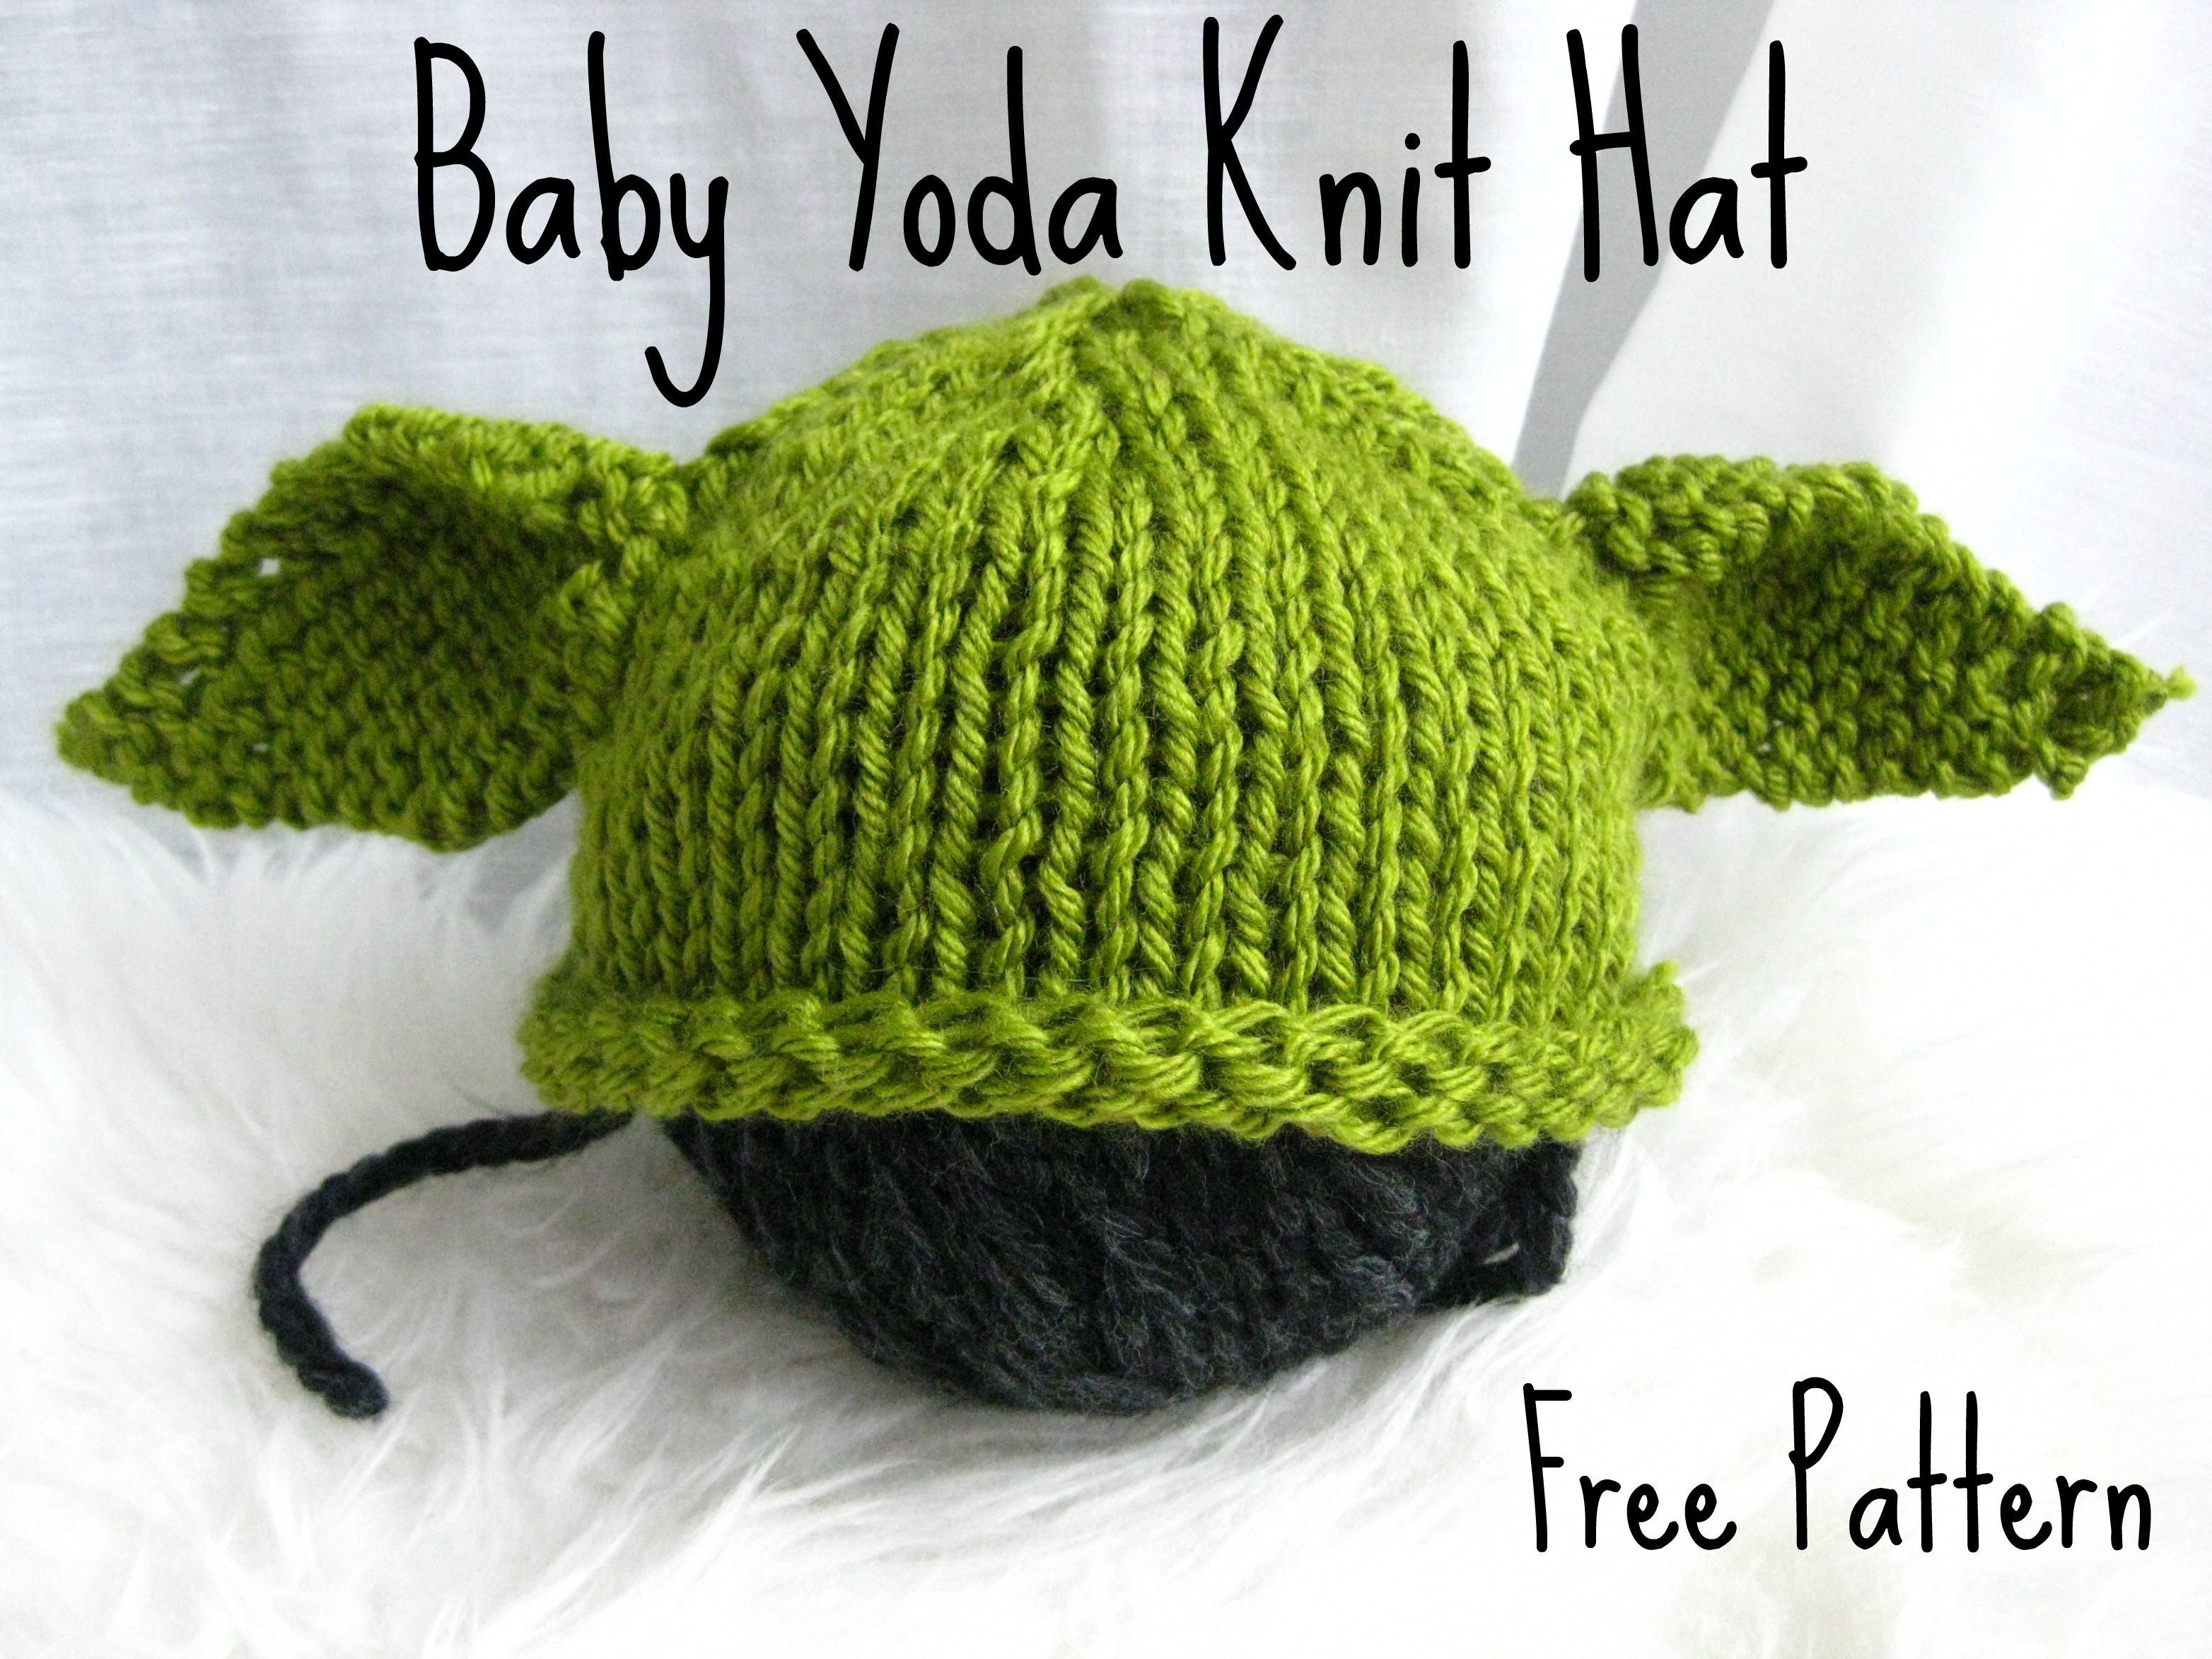 Baby yoda knit hat with free pattern knit hats free pattern baby yoda knit hat with free pattern bankloansurffo Image collections